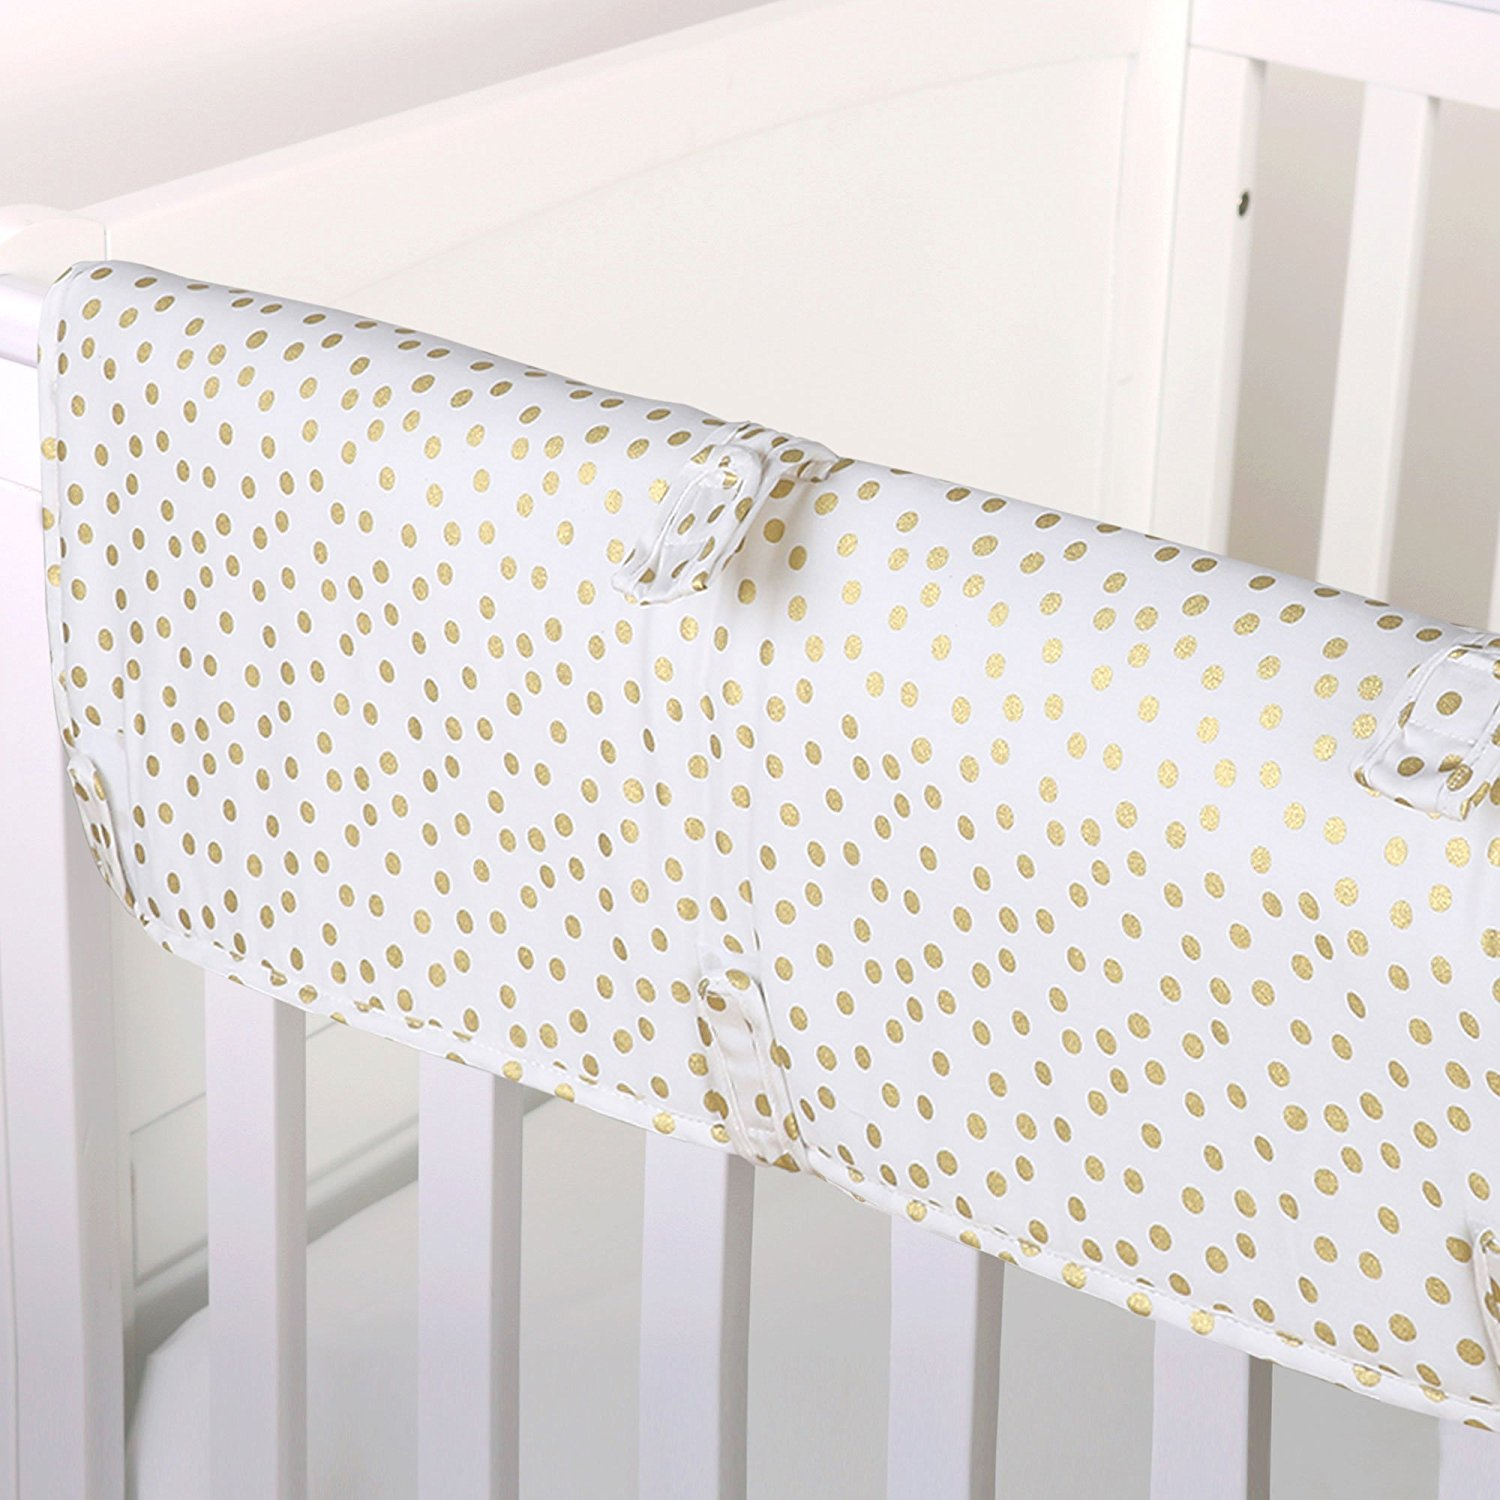 Gold Confetti Dot Print 100% Cotton Padded Crib Rail Guard by, Crib rail guard protects your teething baby from harmful toxins while keeping the.., By The Peanut Shell Ship from US